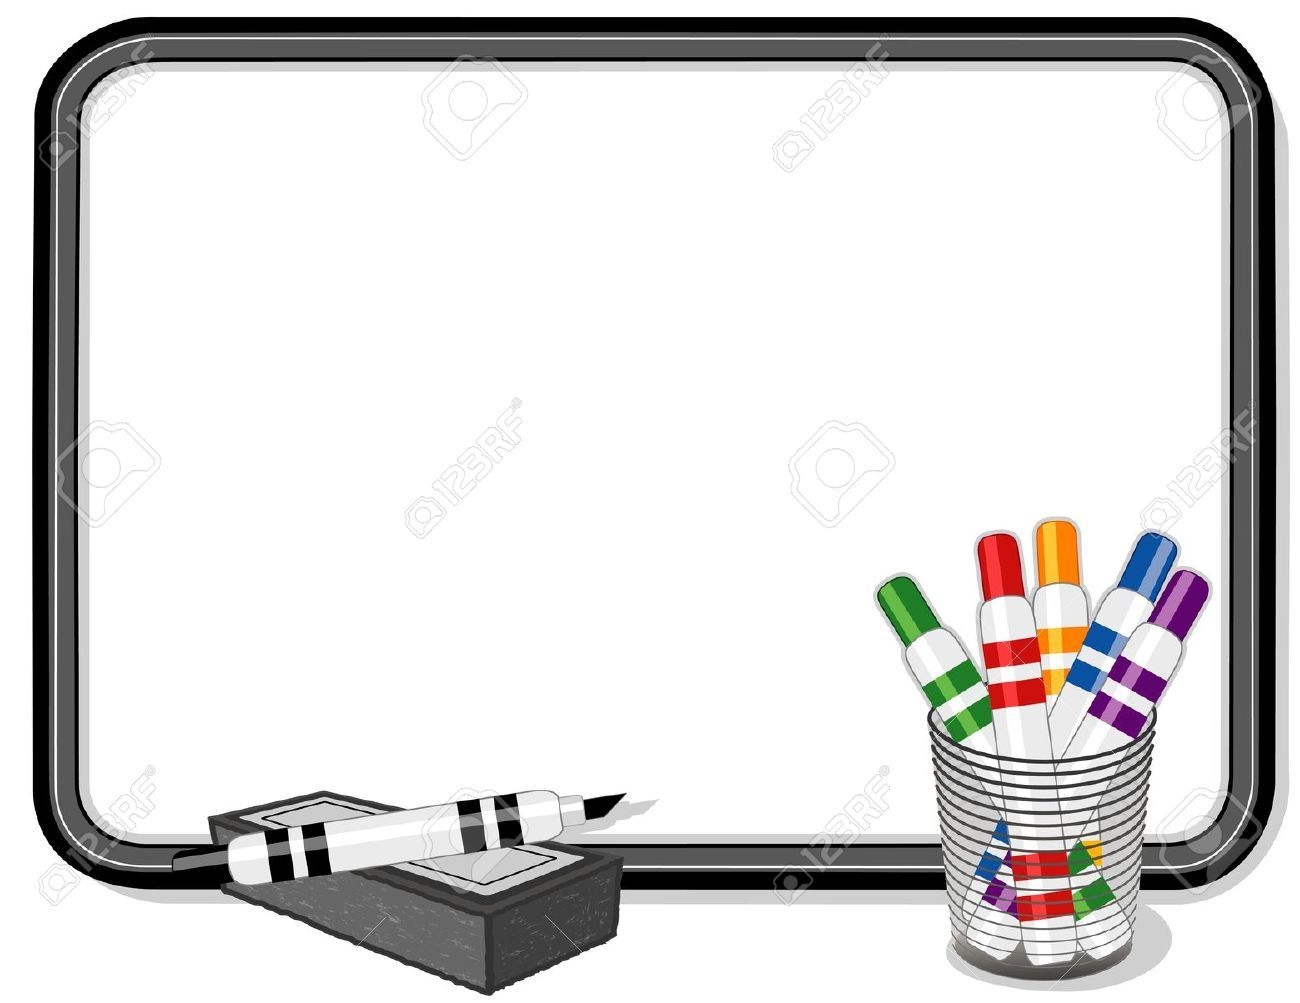 Whiteboard With Multicolor Marker Pens Powerpoint Background Design Background Powerpoint Marker Pen